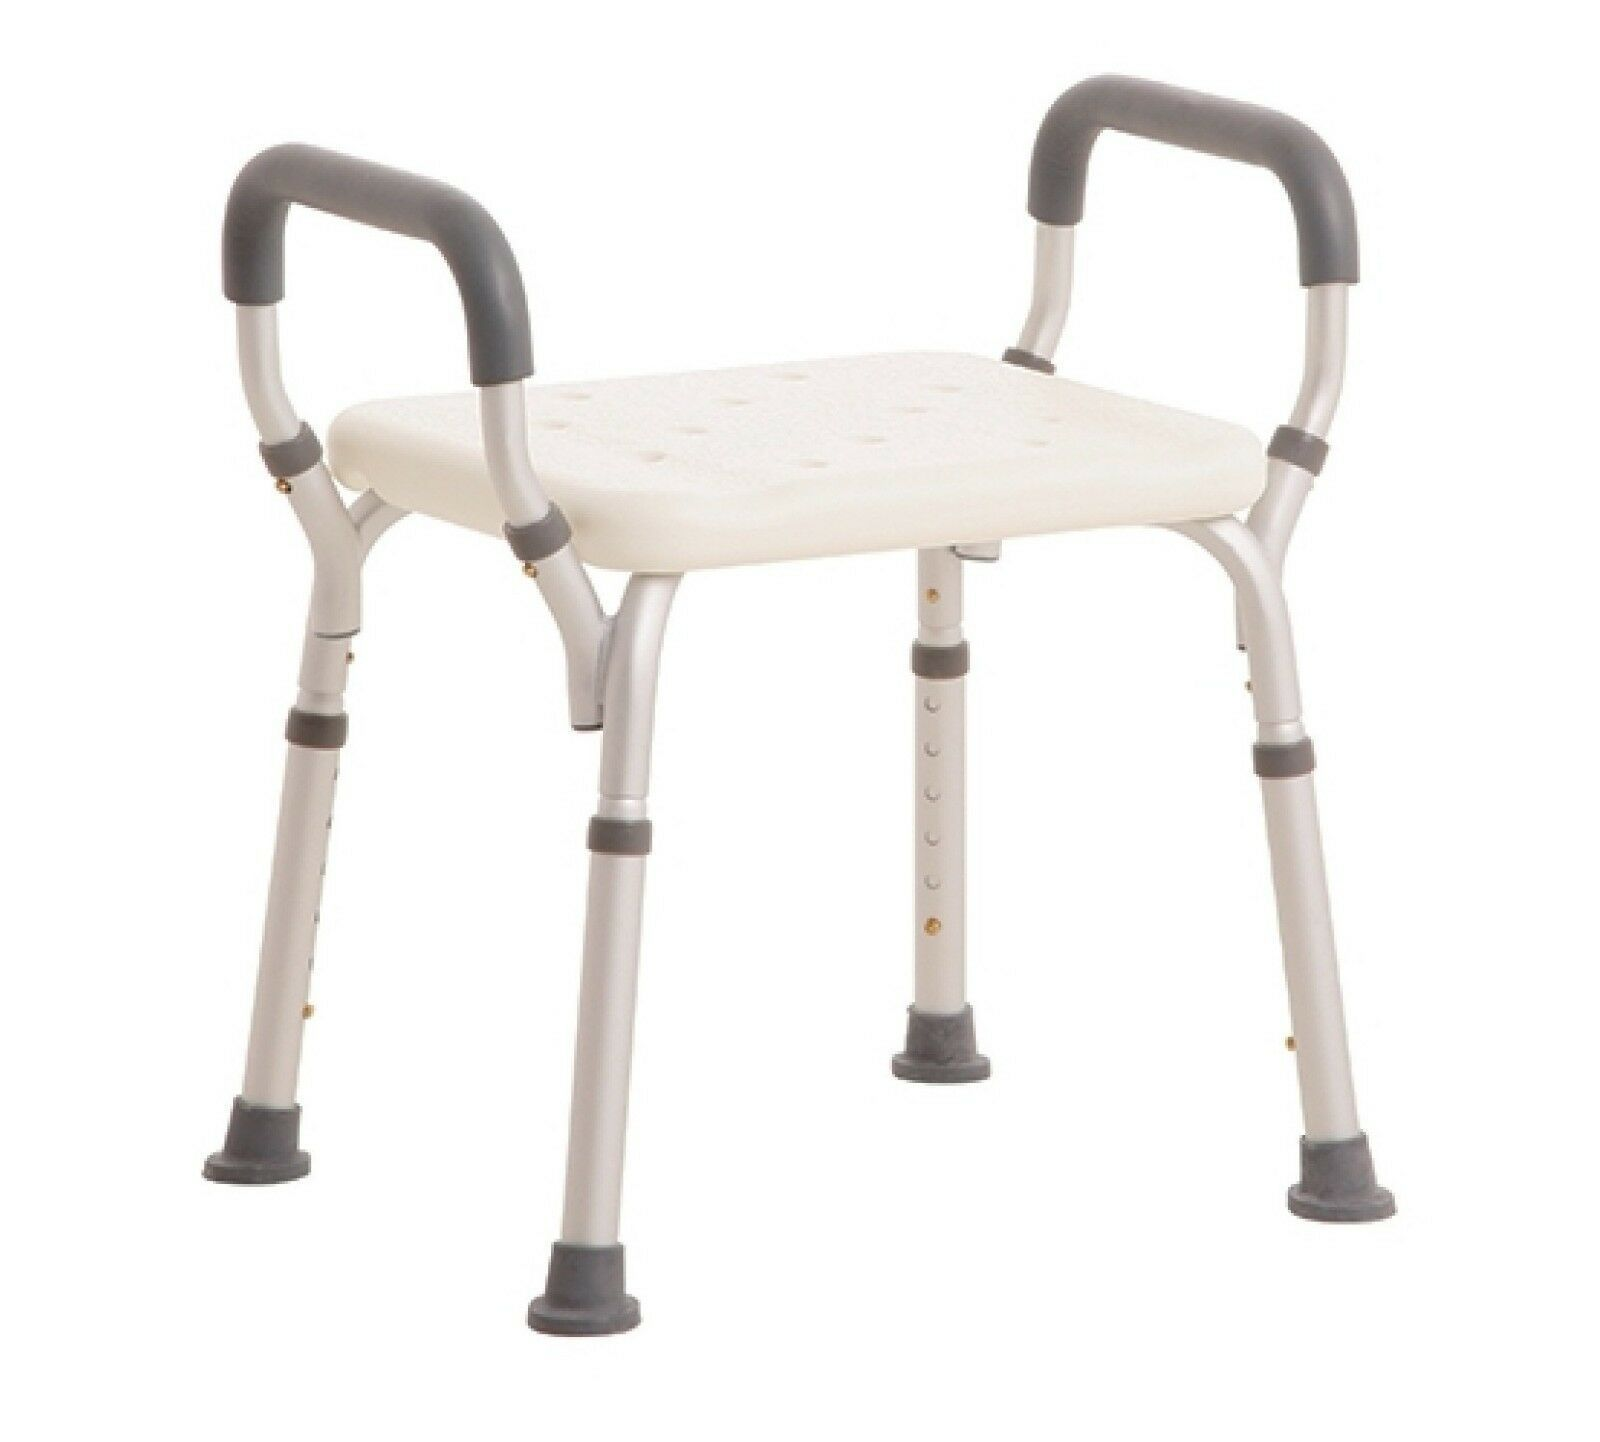 Aluminium Shower Stool - Australian Standards Approved